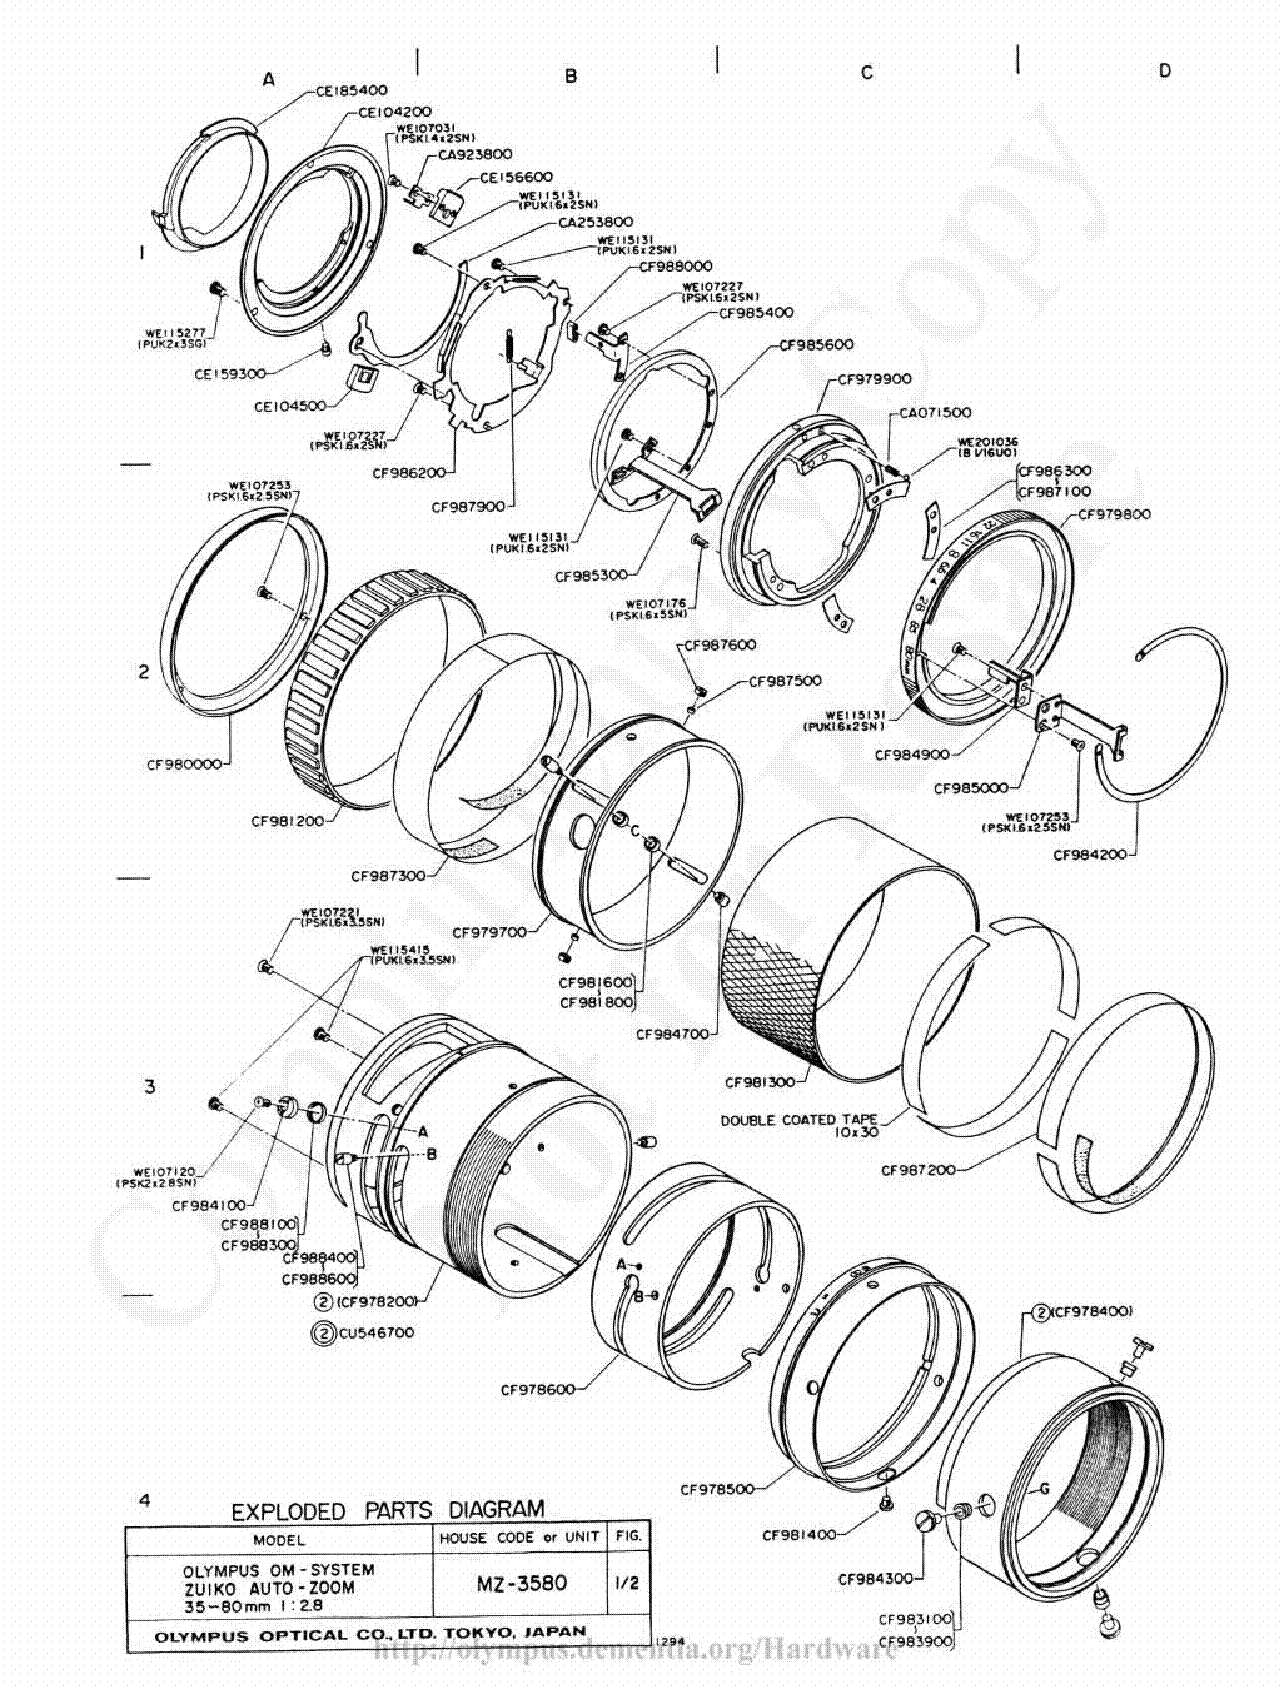 Olympus 35 80mm F2 8 Exploded Parts Diagram Service Manual Download Schematics Eeprom Repair